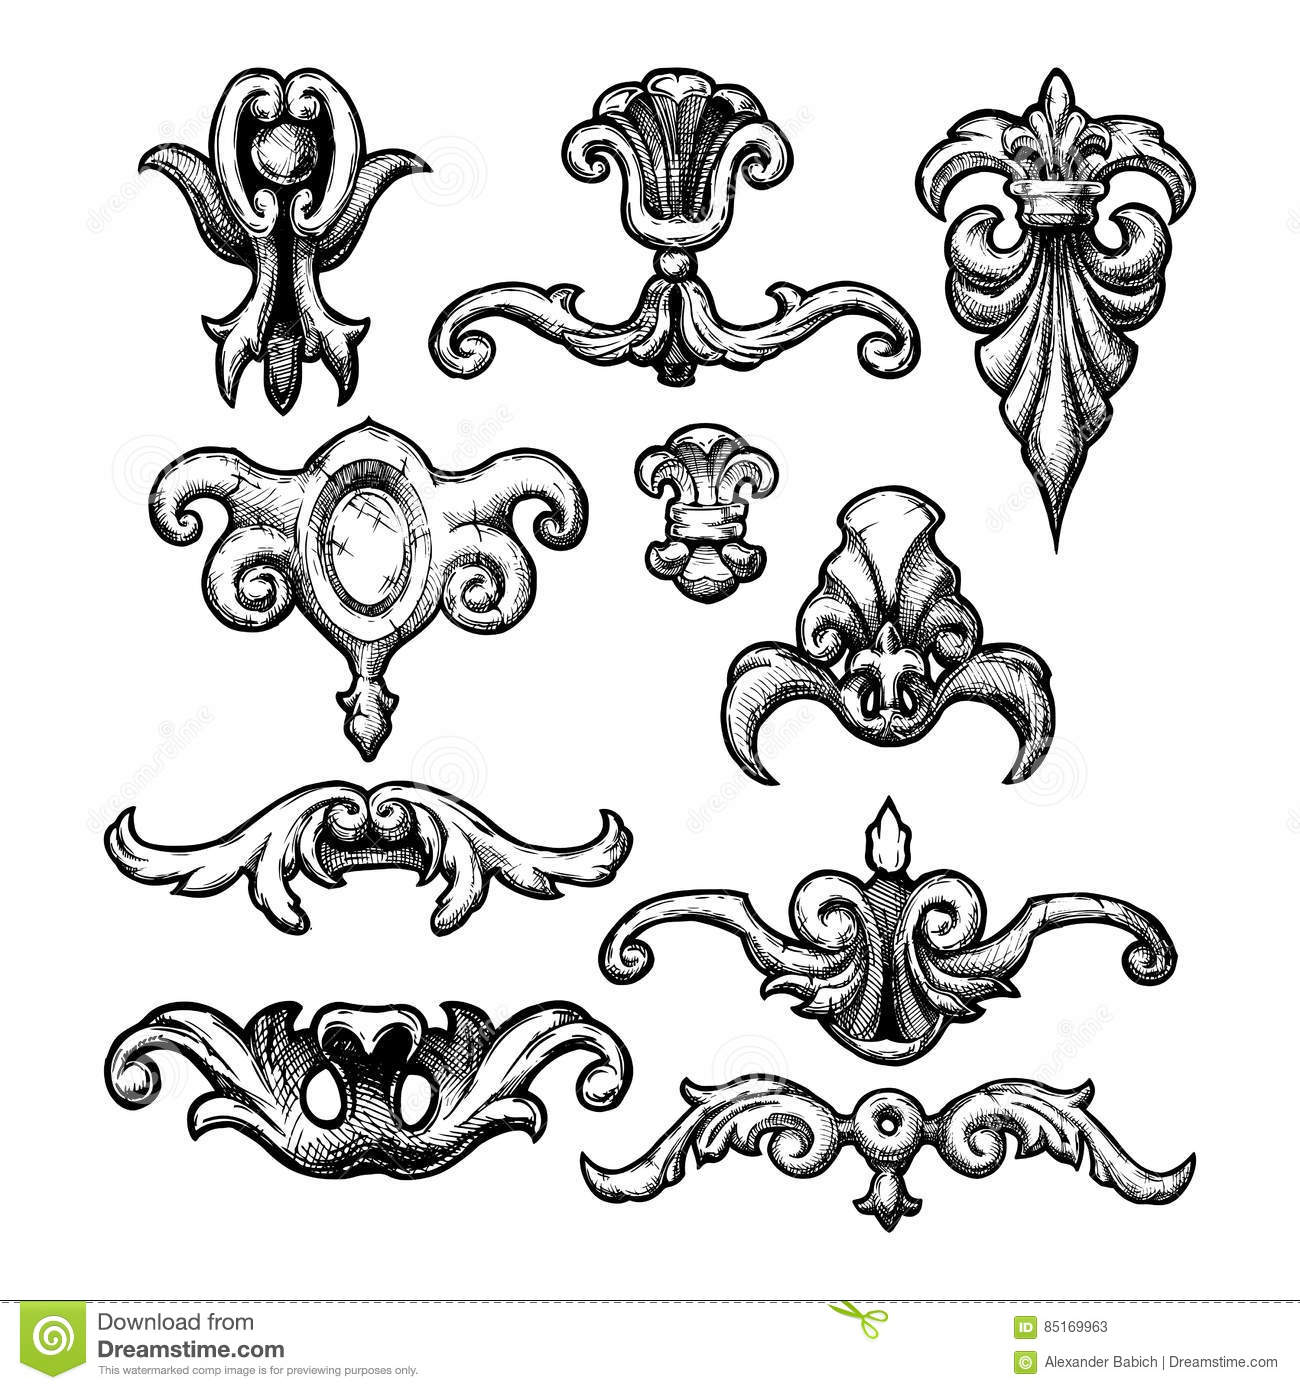 Baroque and renaissance decorative design elements stock for Baroque design elements